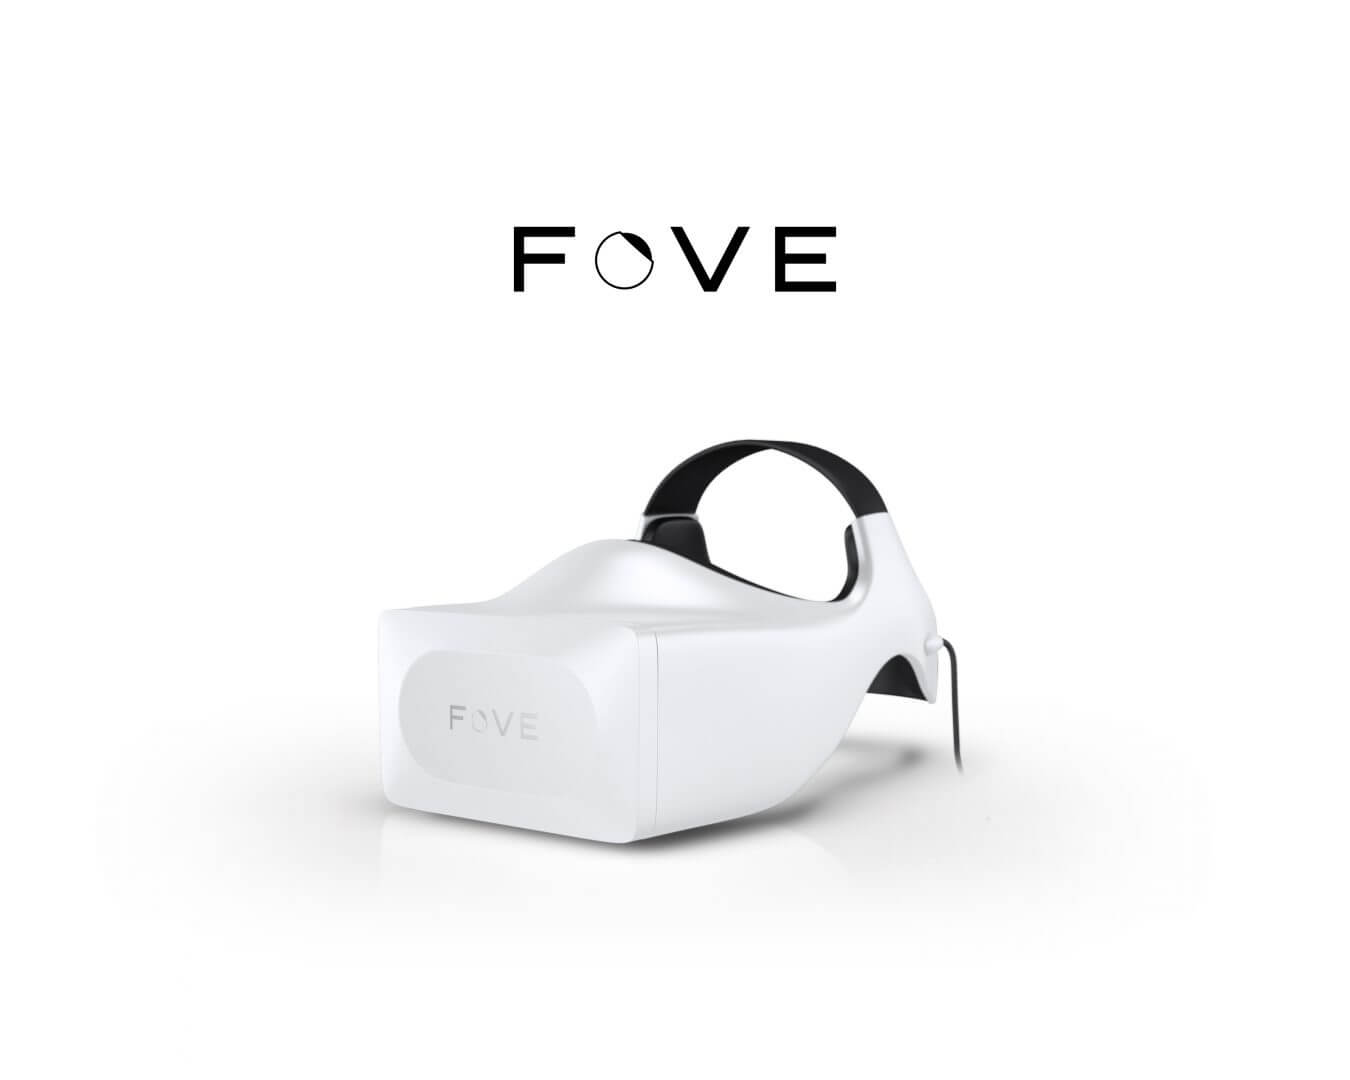 FOVE: Eye Tracking VR Visor